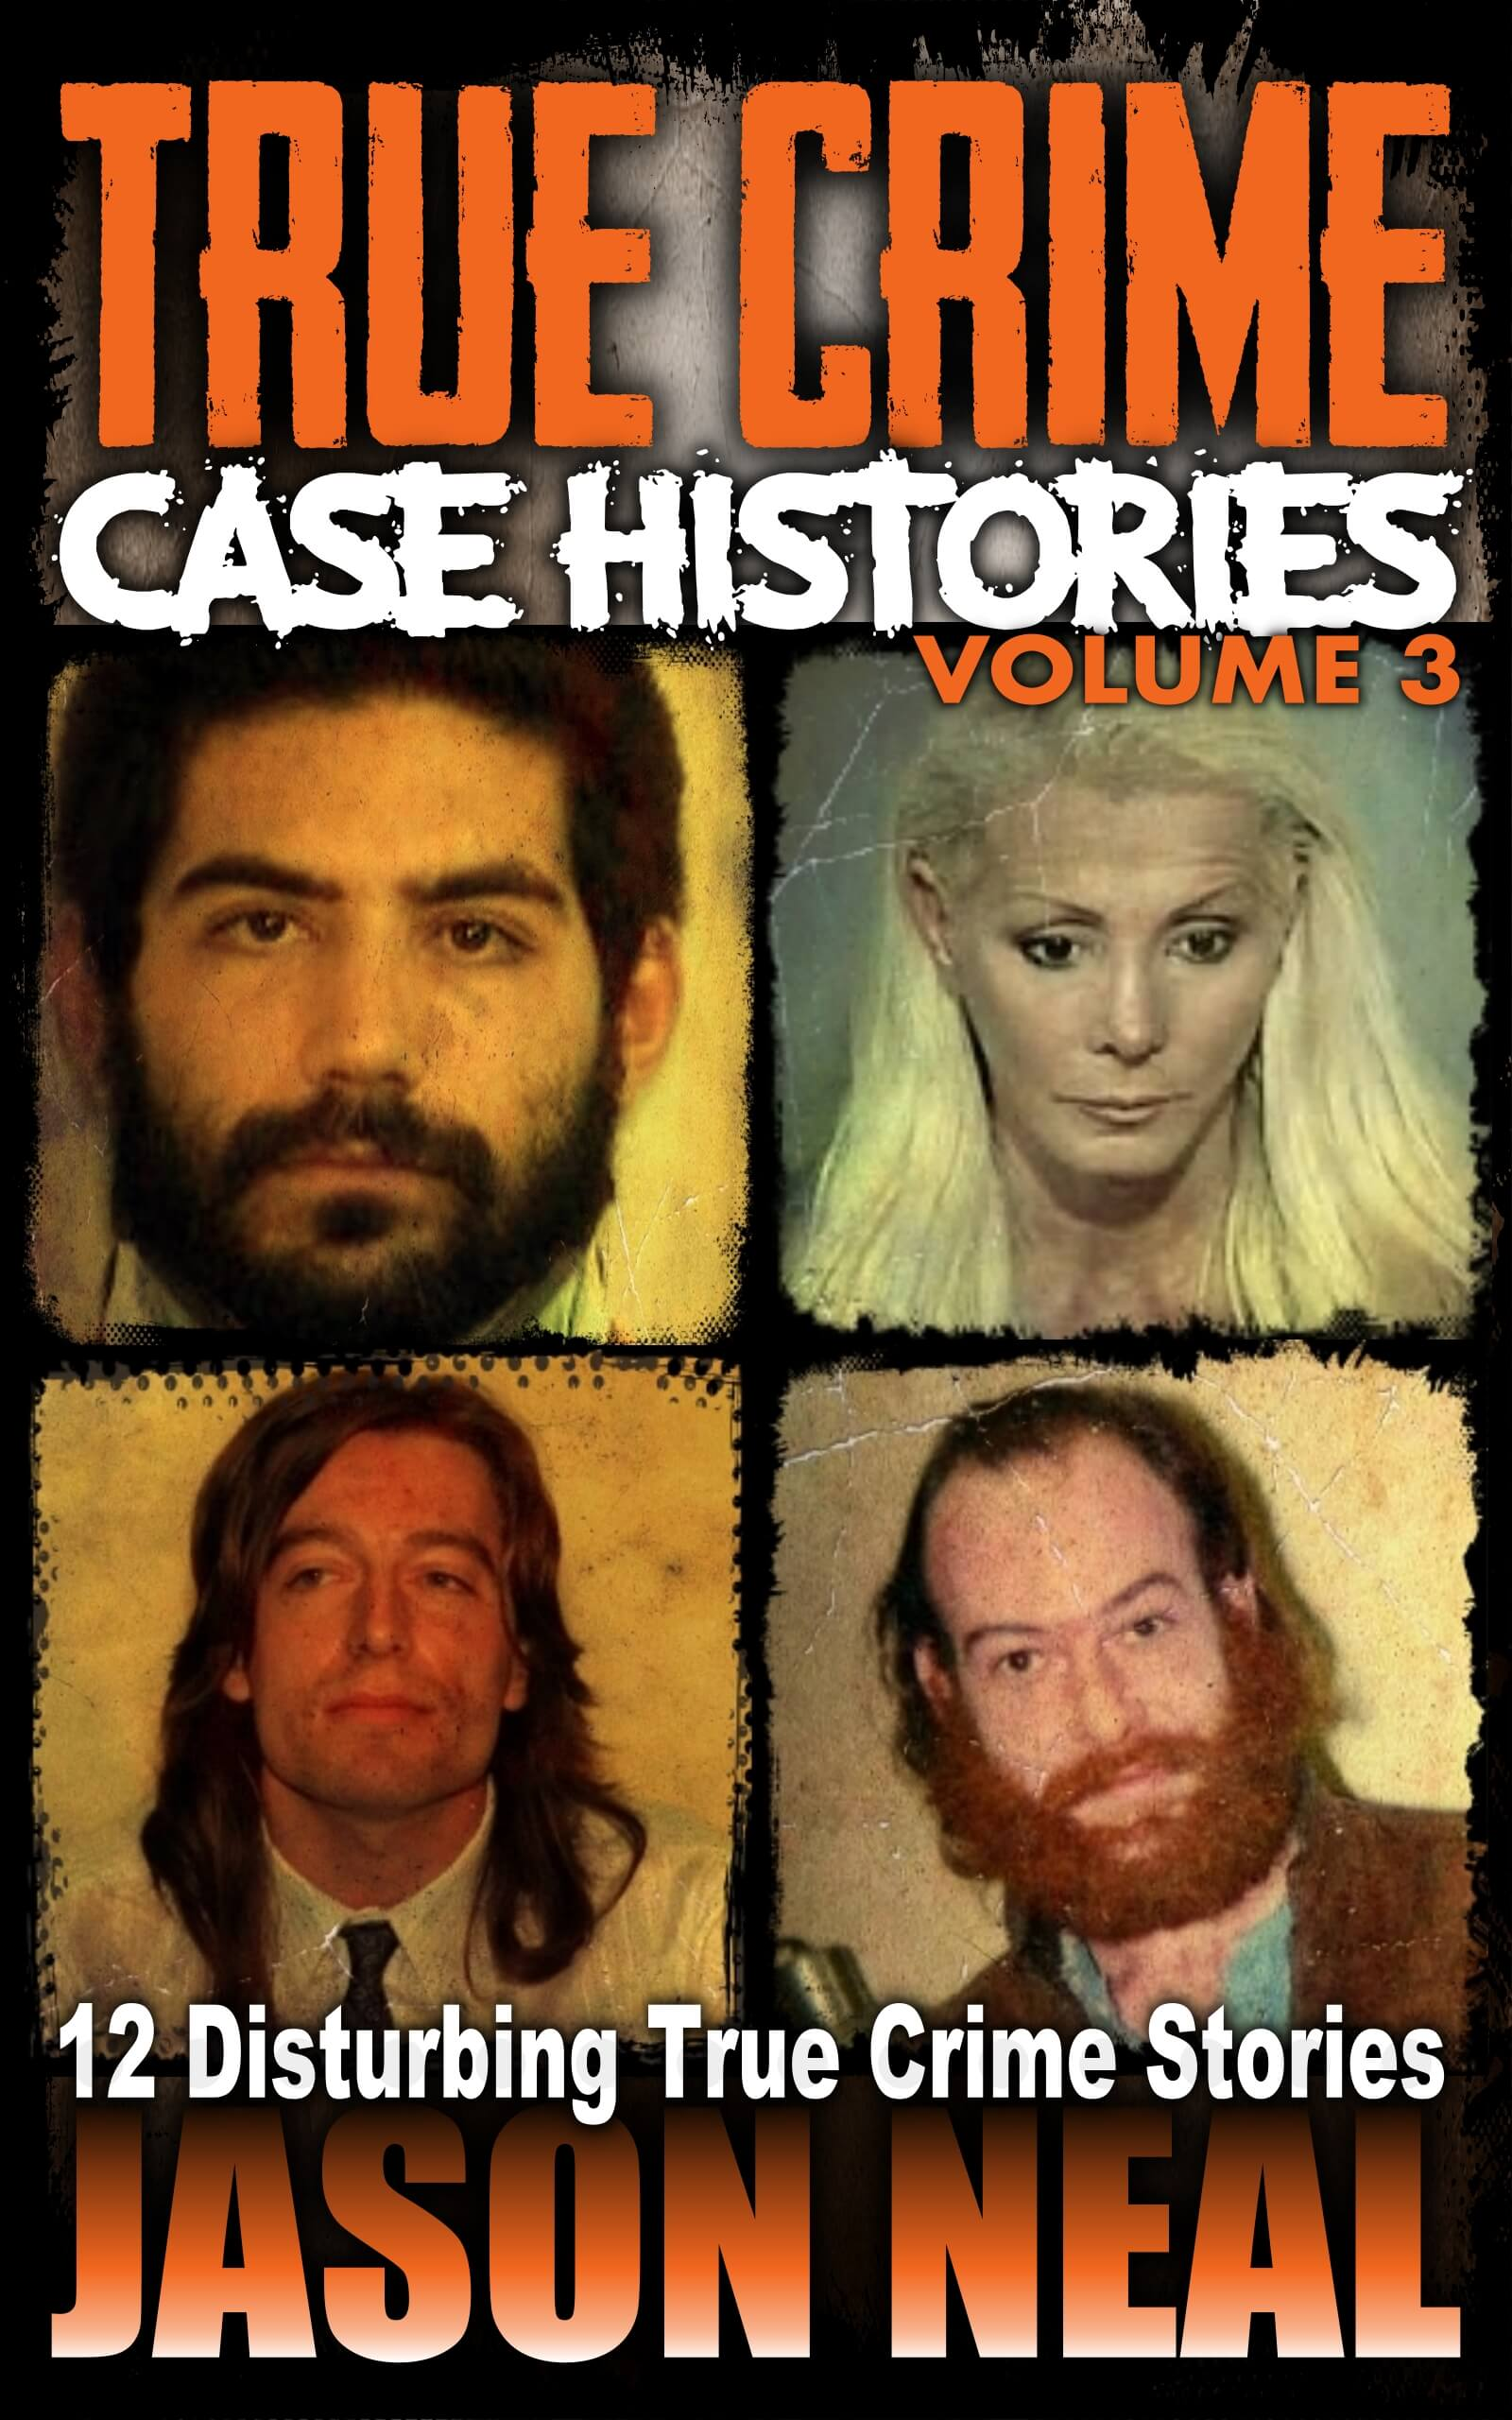 True Crime Case Histories, Volume 3: 12 Disturbing True Crime Stories